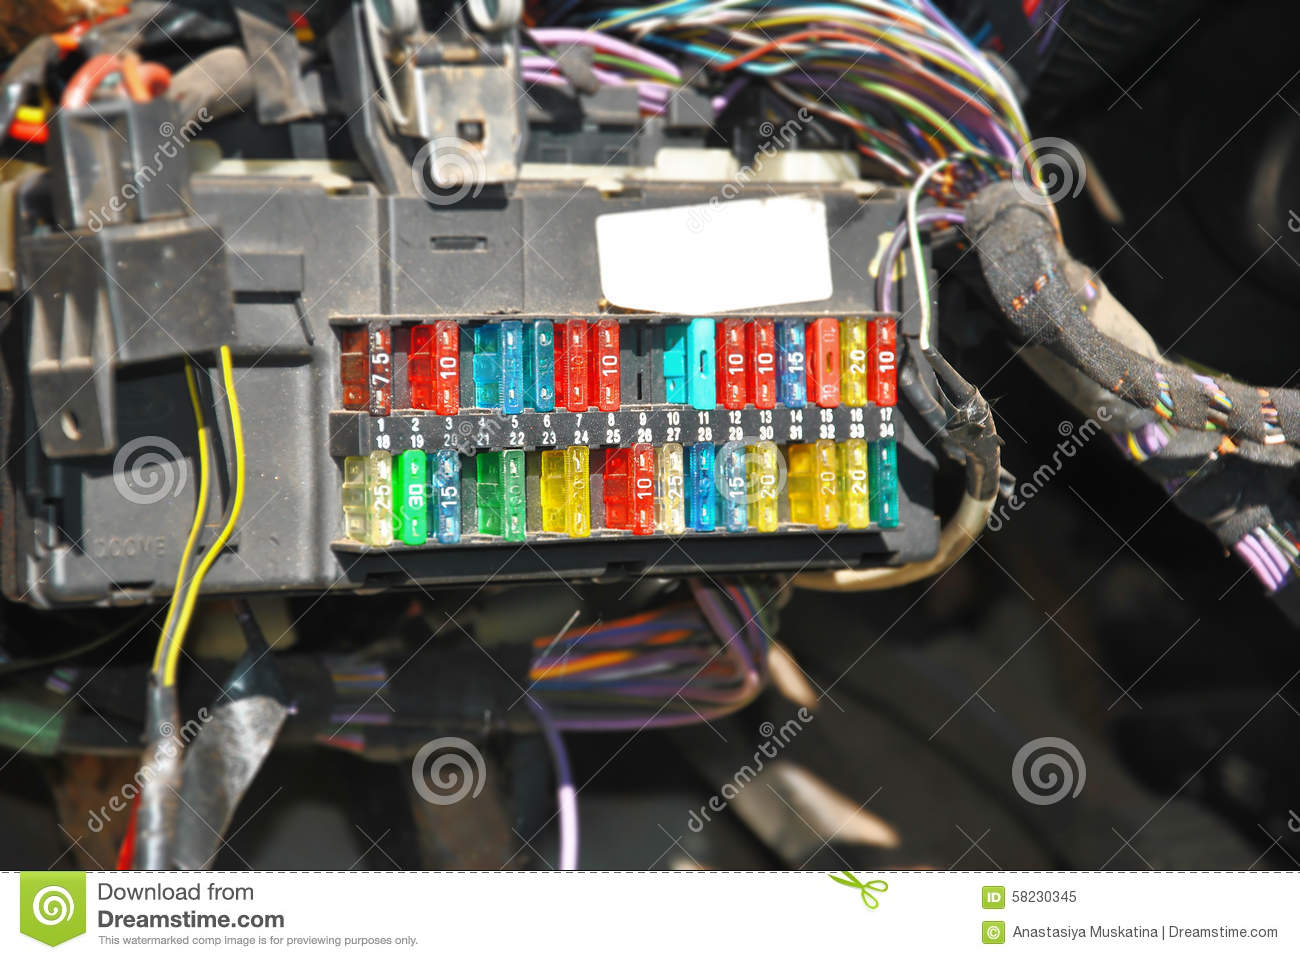 Intruder Fuse Box Wiring Library Cub Cadet 2130 Diagram Fusebox With Connection Wires Hamess Stock Image Of Design Connecting Wire To